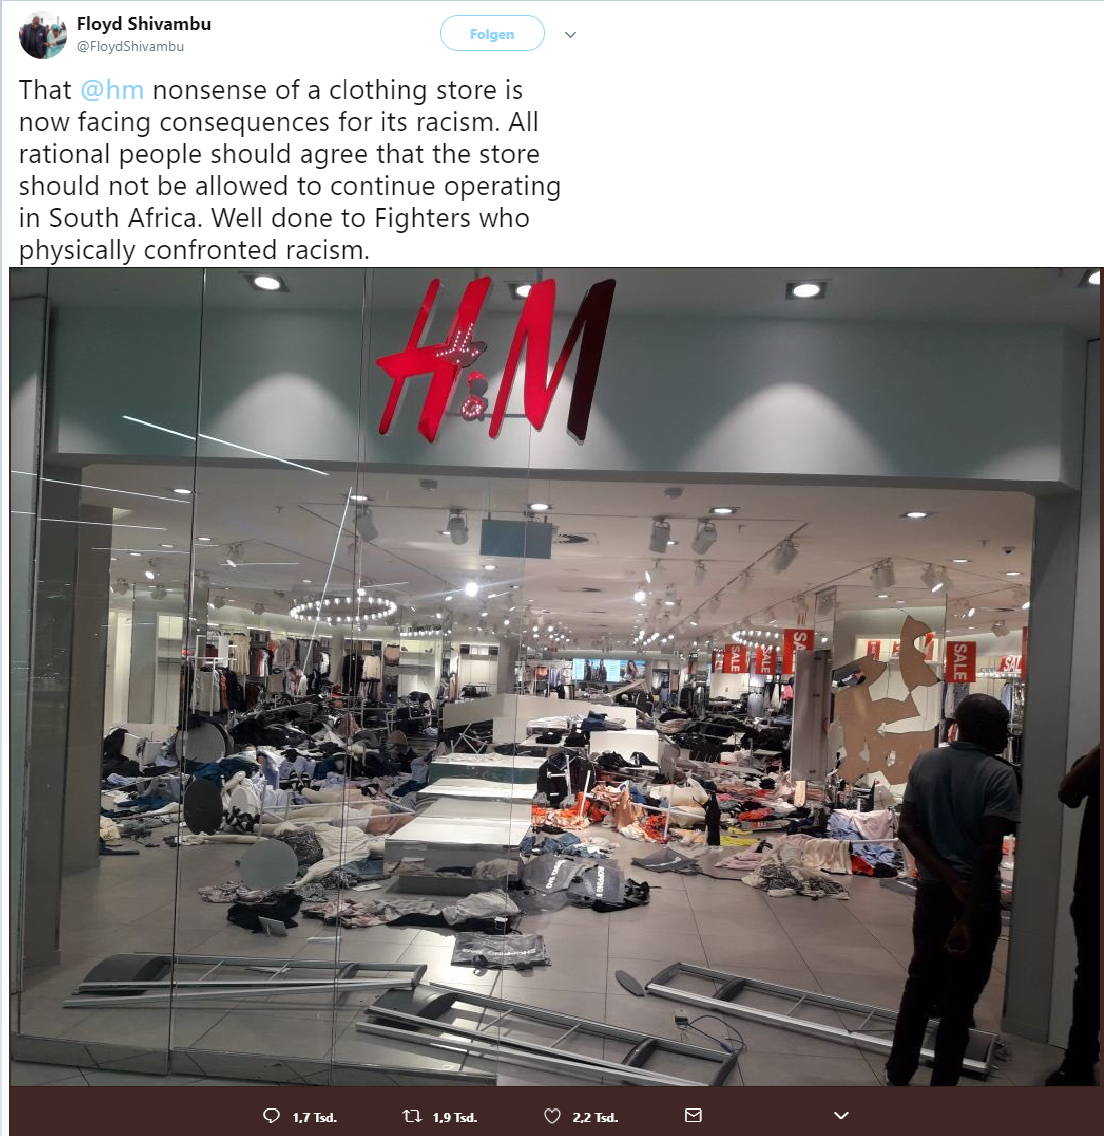 Abschaum Affen machen Affensachen Biomüll coolest monkey in the jungle H&M H&N>H&M haben verstanden It's okay to be white looten looten und nicht Leveln Monkeys came out of the jungle Neger Neger machen Negersachen physically confronted racism rational people rumble in the jungle SALE Shithole uncool monkeys Untermenschen well done